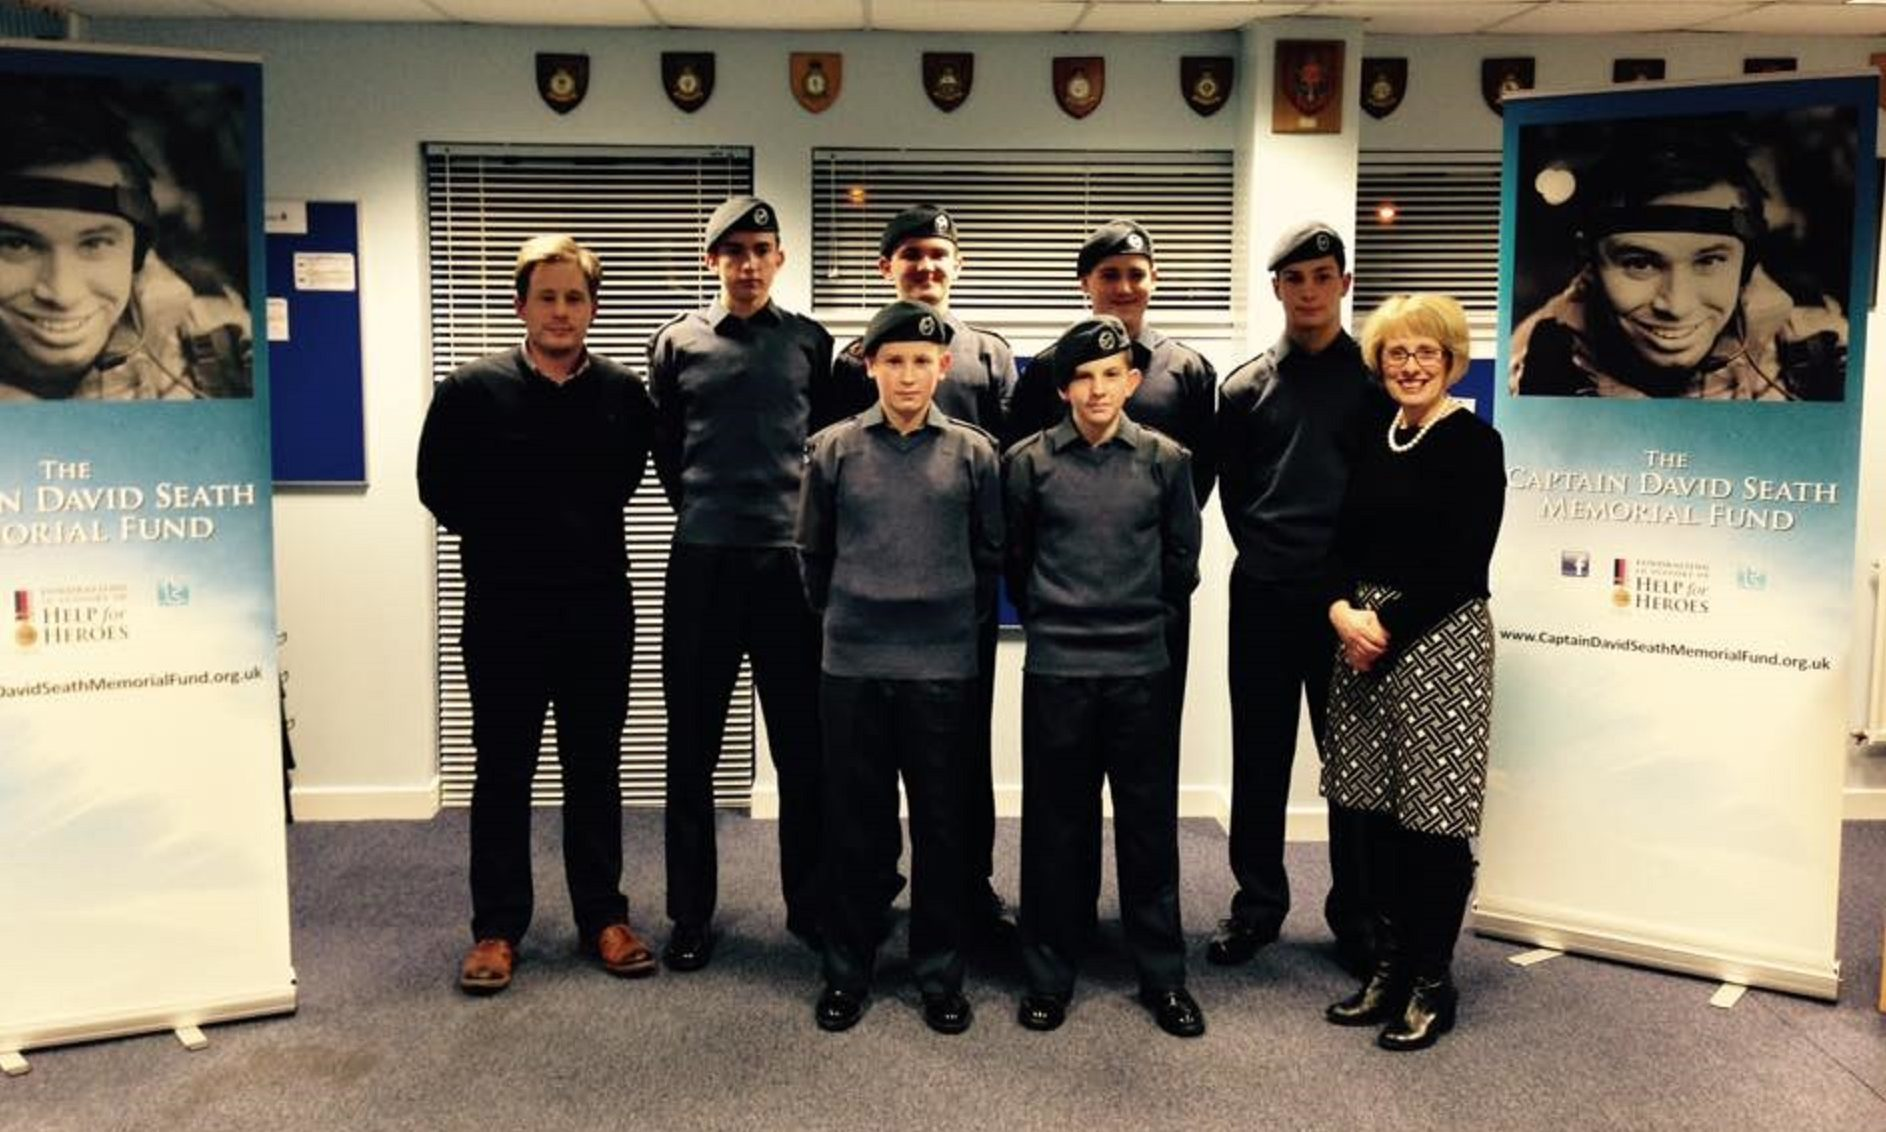 The group from the 1145 Dunfermline Squadron, of which Captain David Seath was a member.